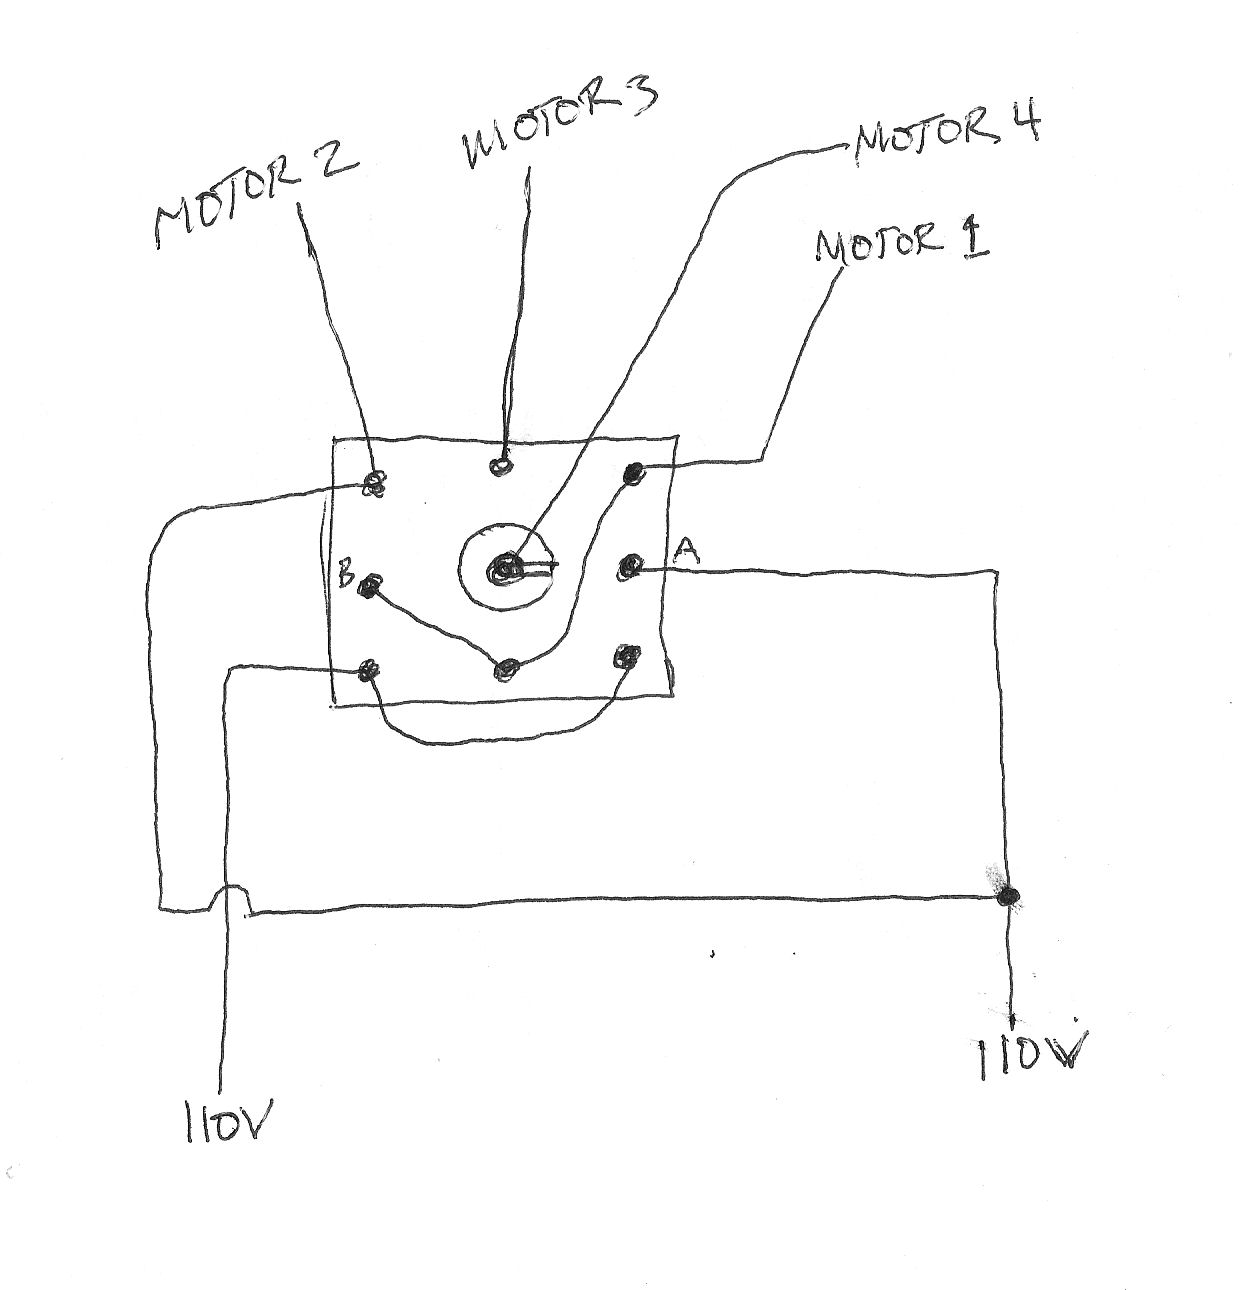 Bremas Drum Switch Diagram